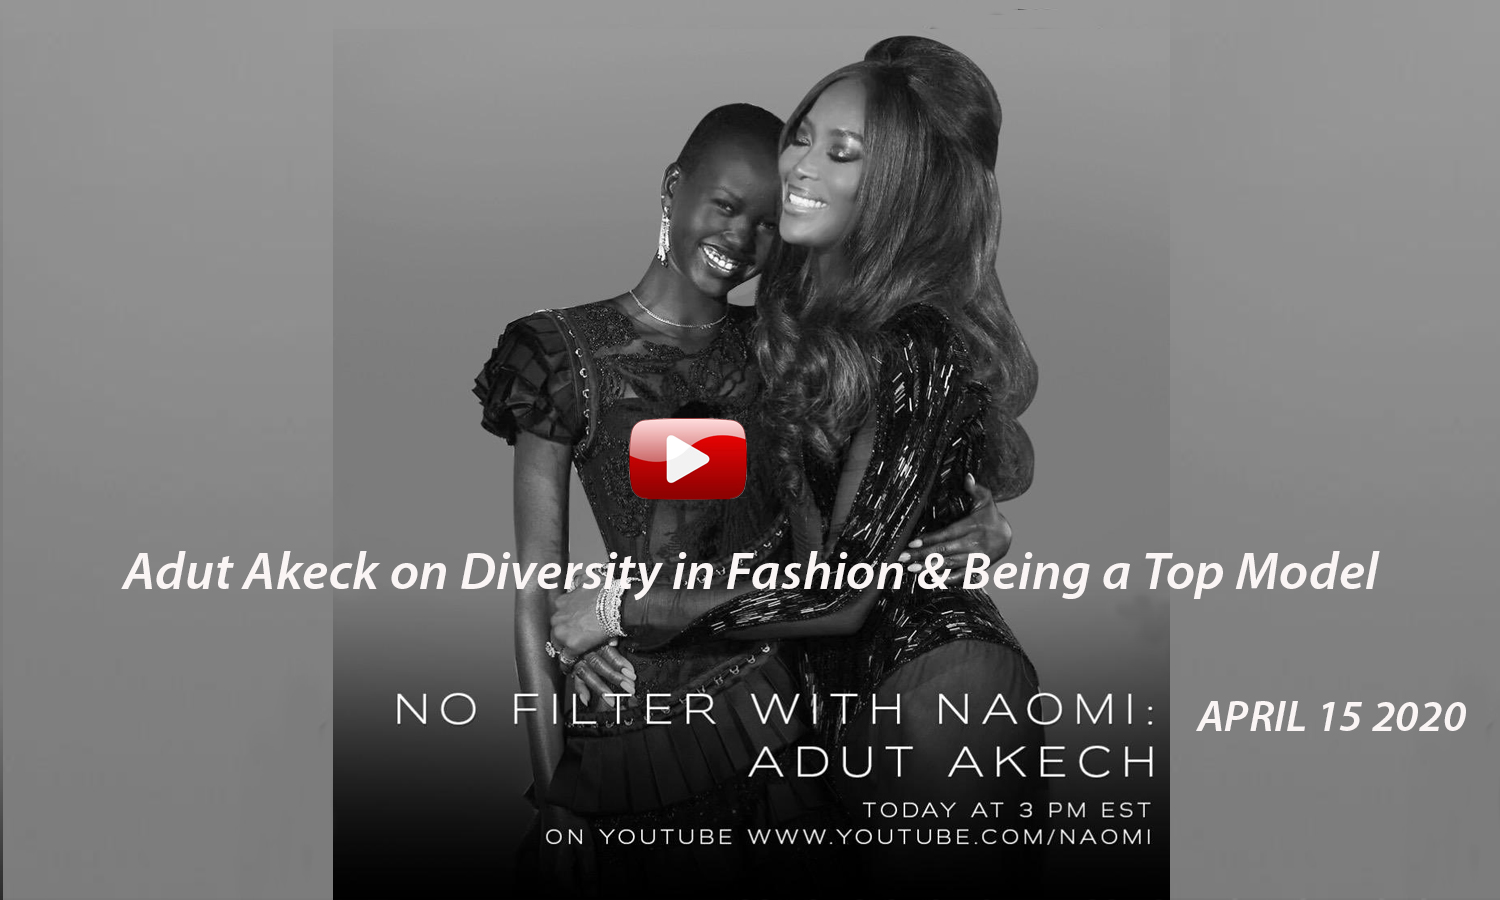 AFRICAN FASHION STYLE MAGAZINE - No-filter-with-Naomi-Interview-with-Adut-Akech - Photographer DAN NGU - Media Partner DN AFRICA - STUDIO 24 NIGERIA - STUDIO 24 INTERNATIONAL - Ifeanyi Christopher Oputa MD AND CEO OF COLVI LIMITED AND STUDIO 24 - Nahomie NOOR COULIBALY